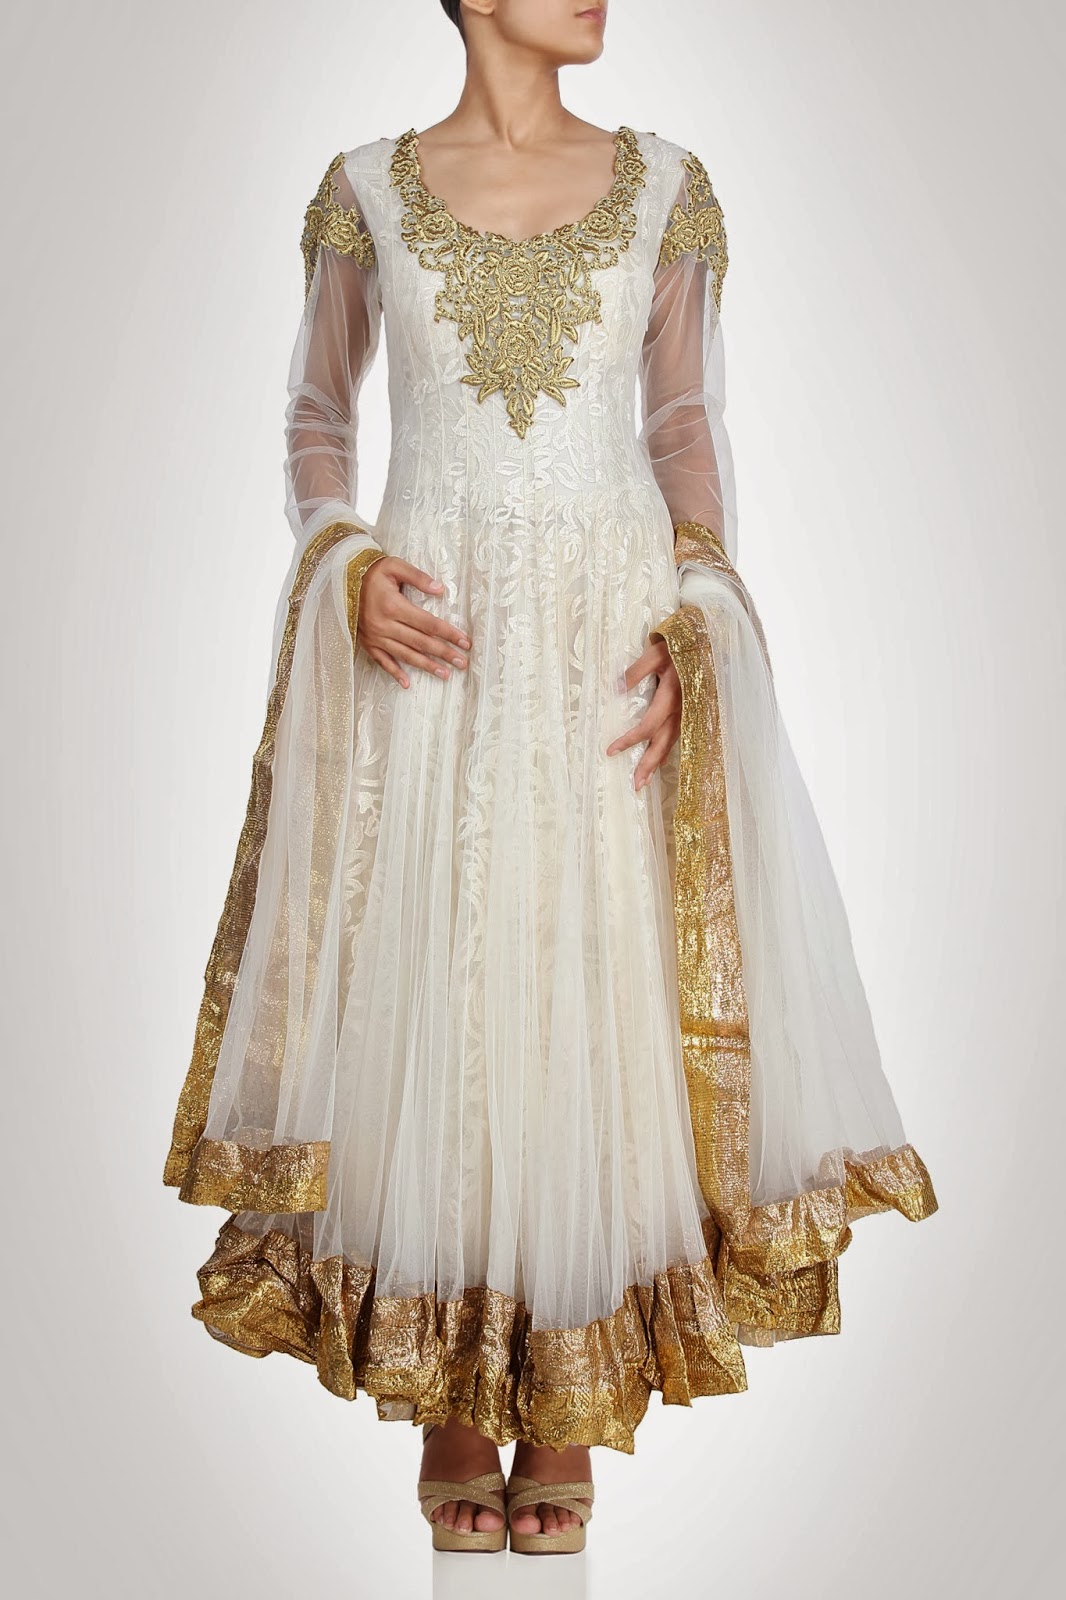 The Best Wedding Dresses 2013 by Seema Gujral